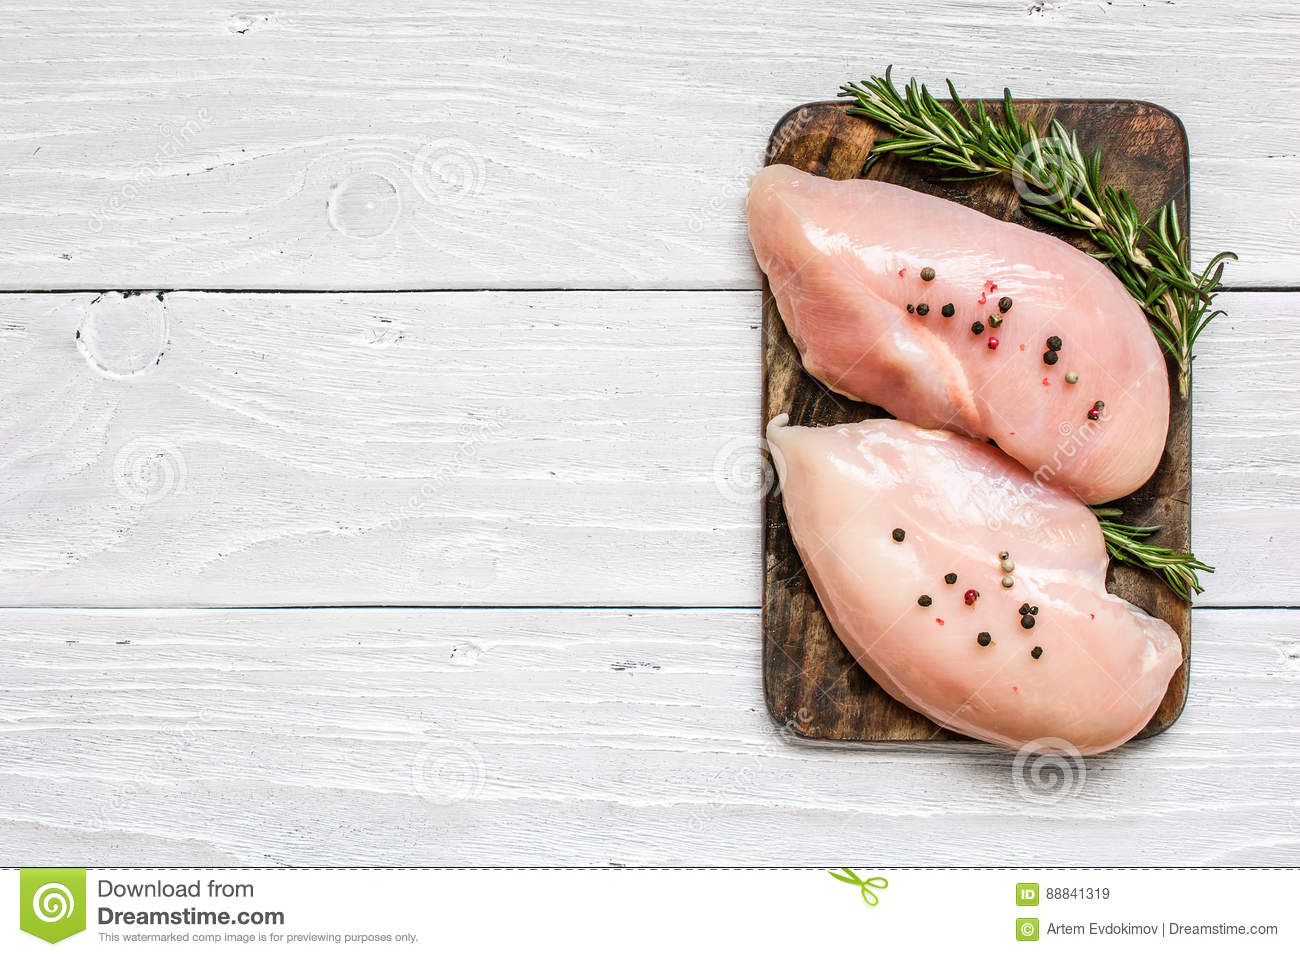 Raw chicken breast fillets on wooden cutting board with herbs and spices